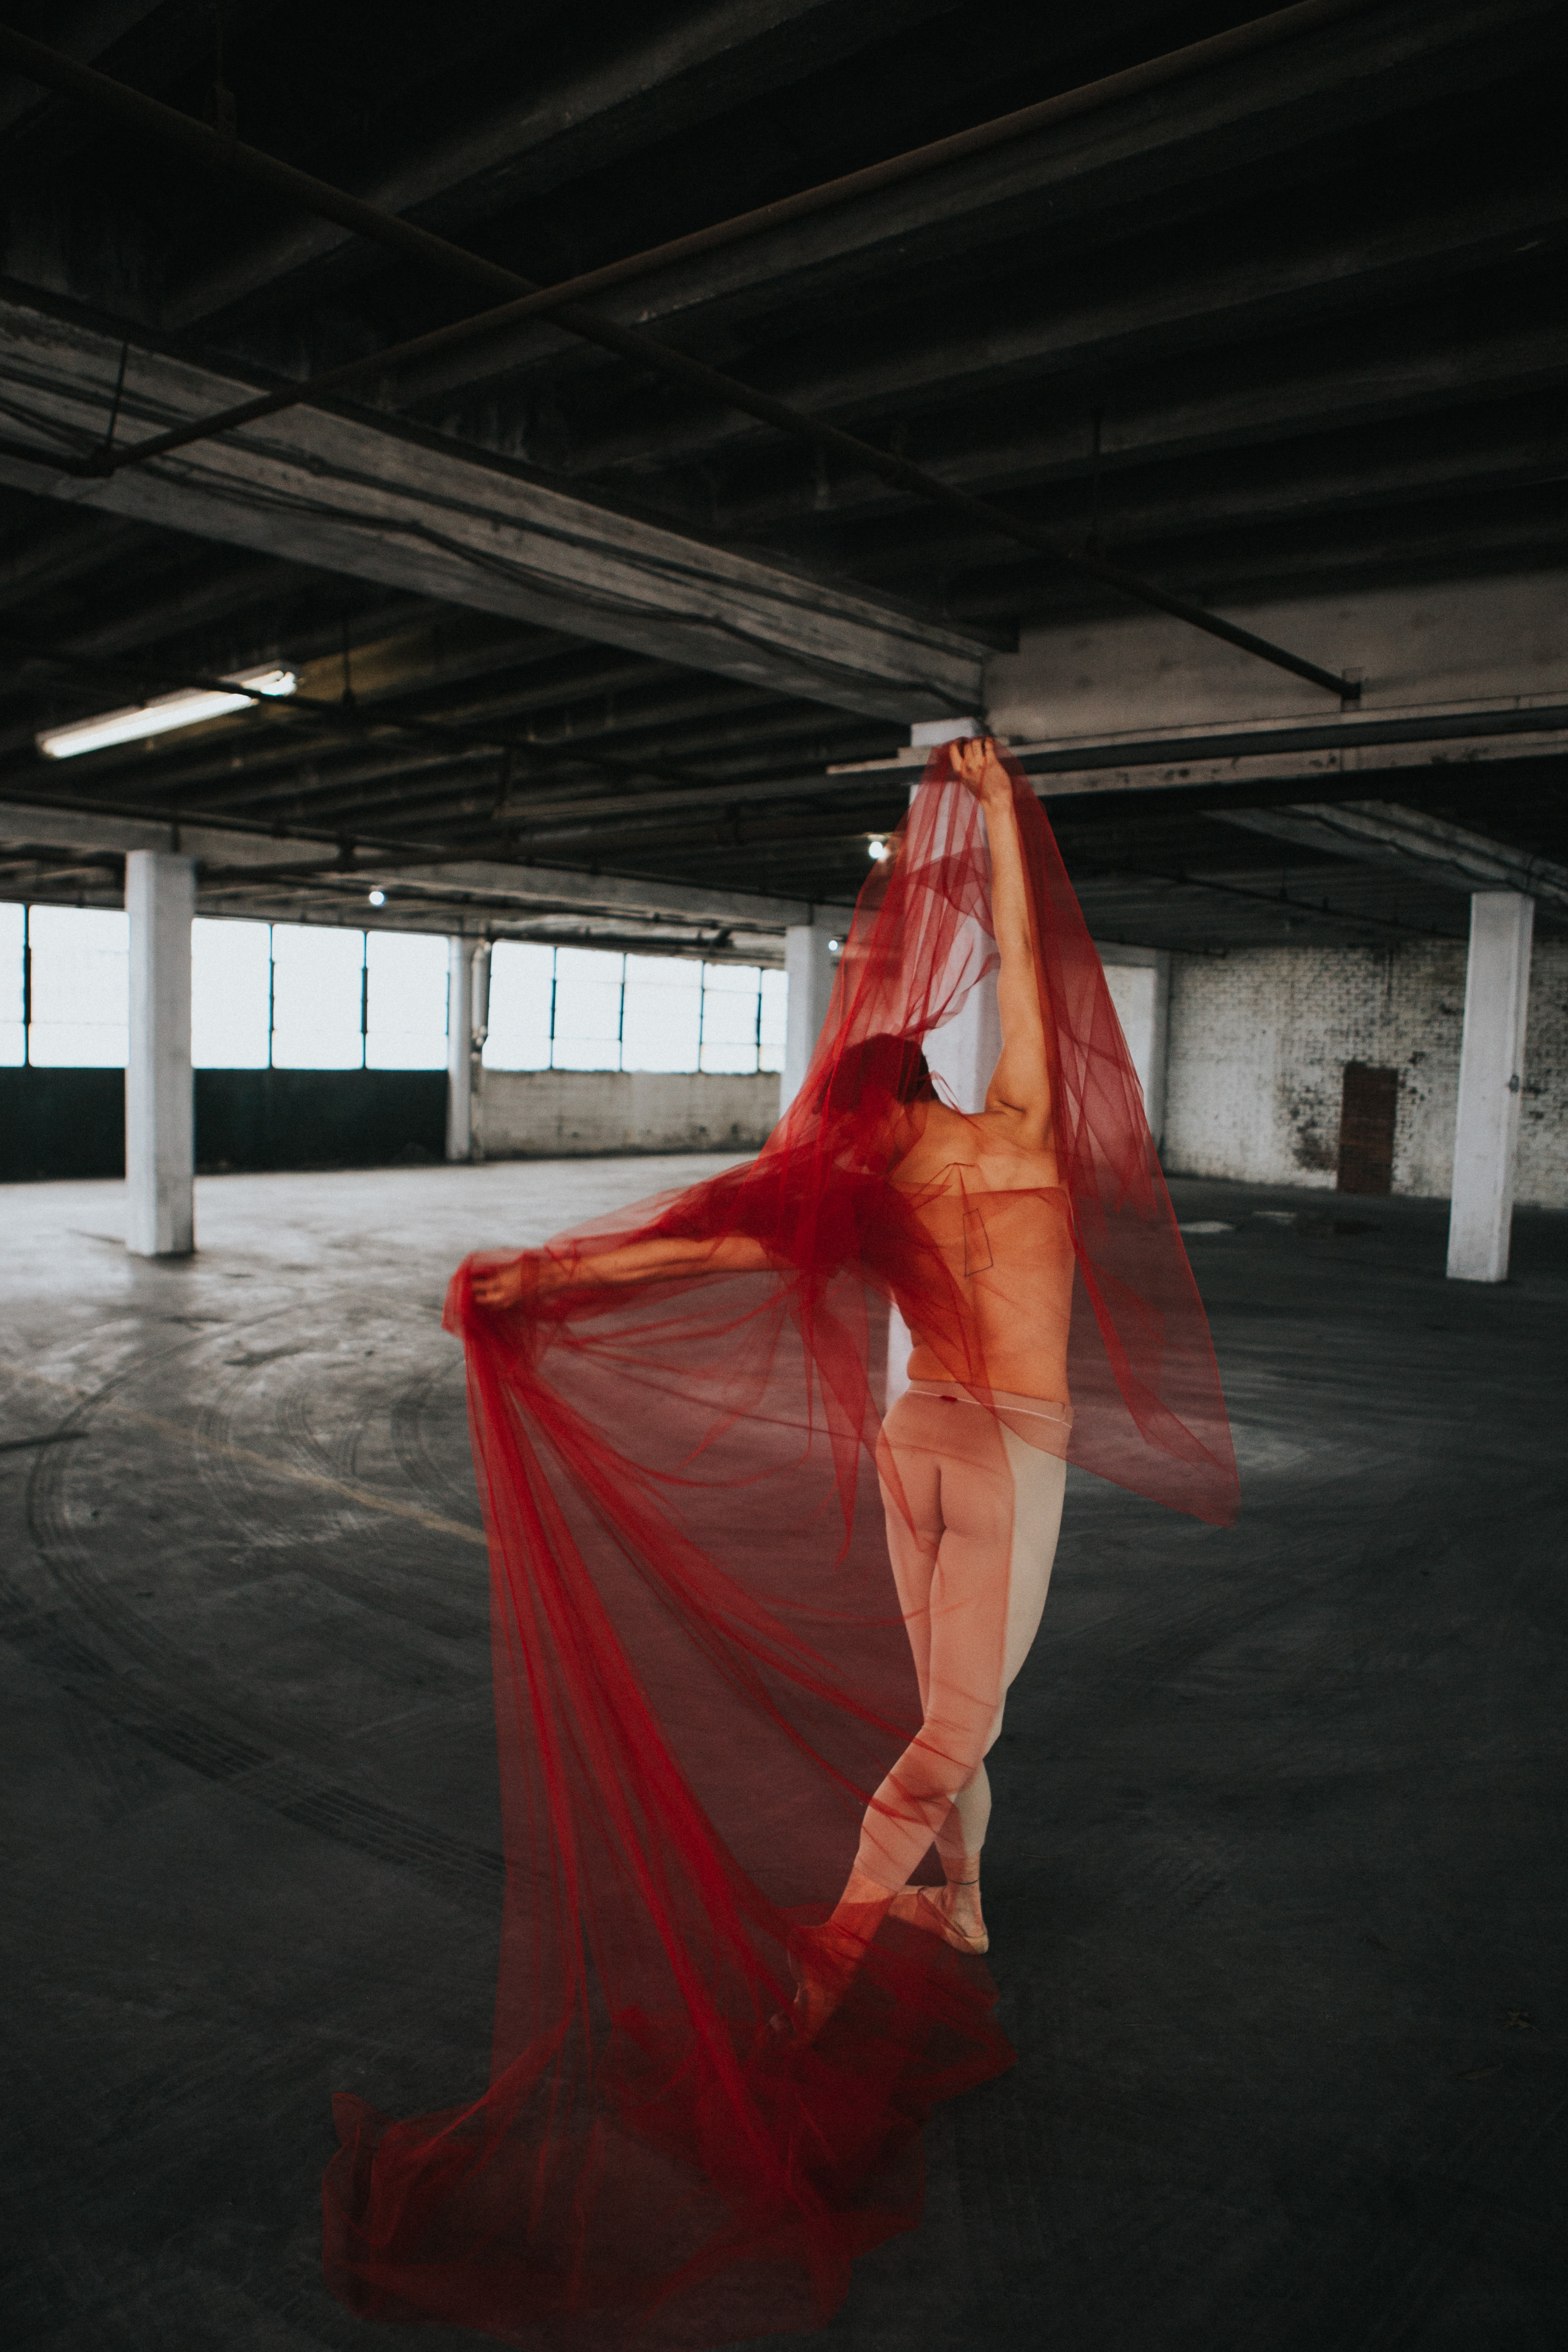 woman wearing red dress dancing on vehicle parking area